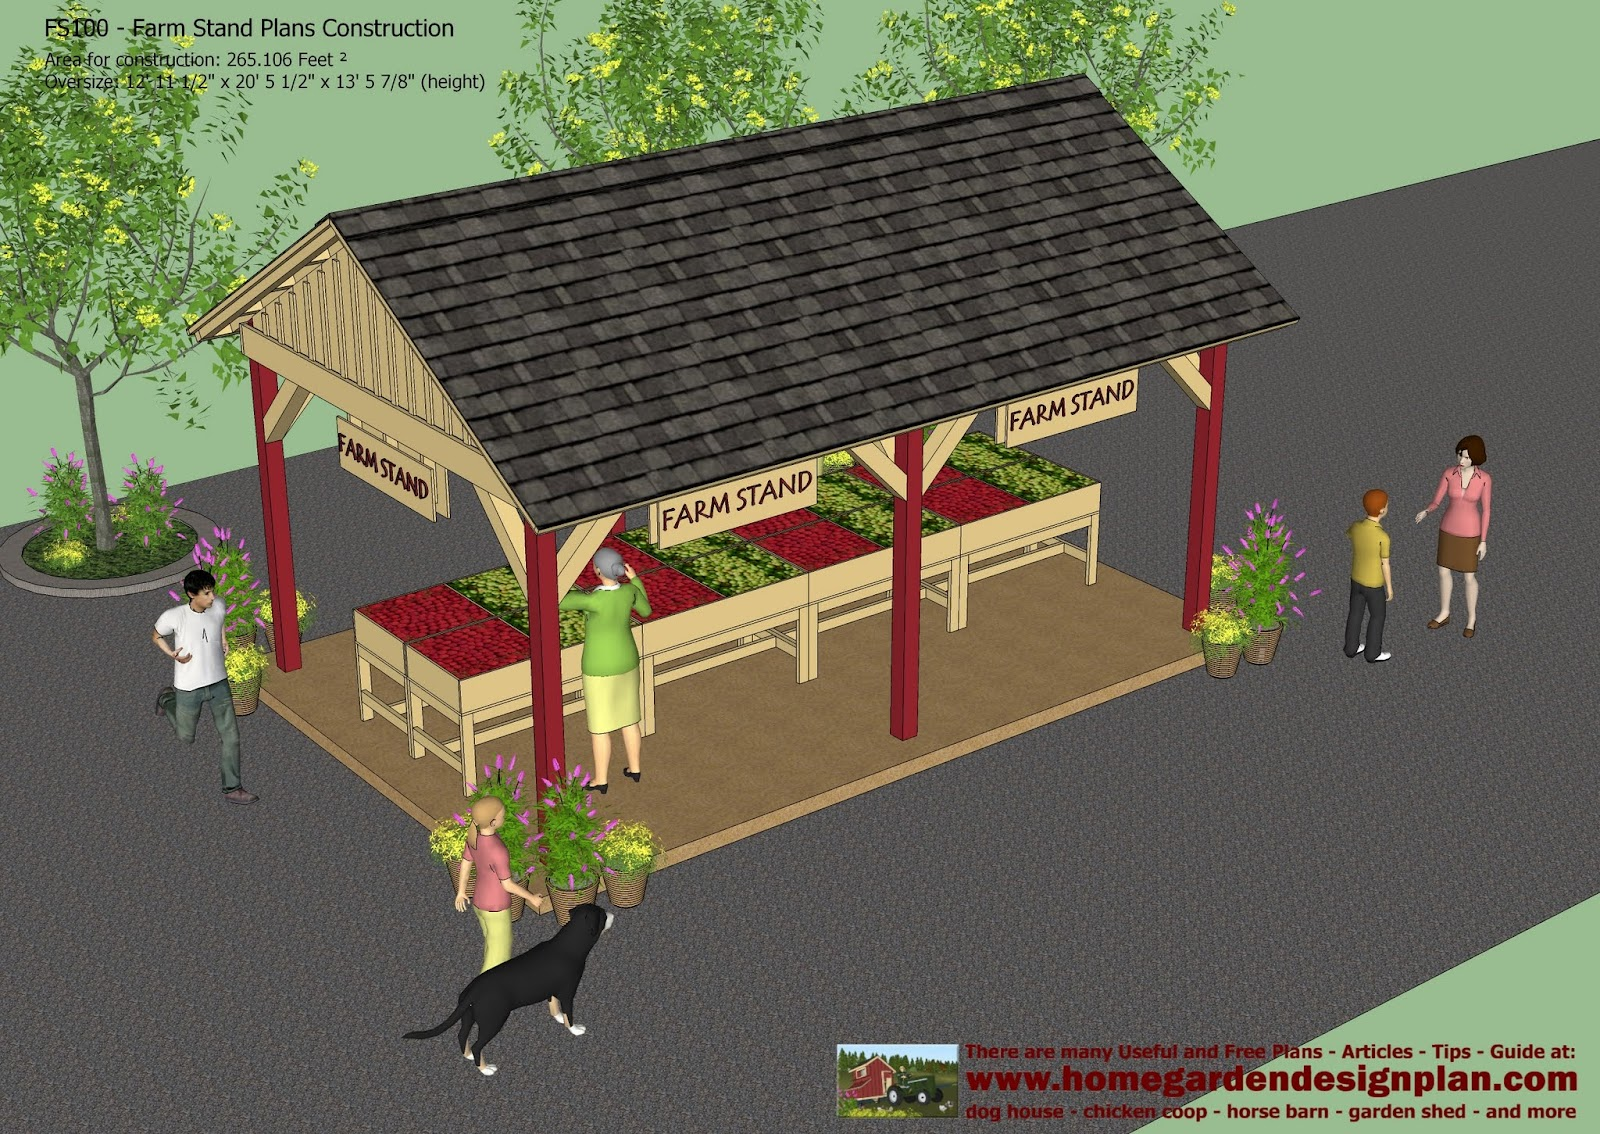 Home garden plans fs100 farm stand plans construction Farm plan